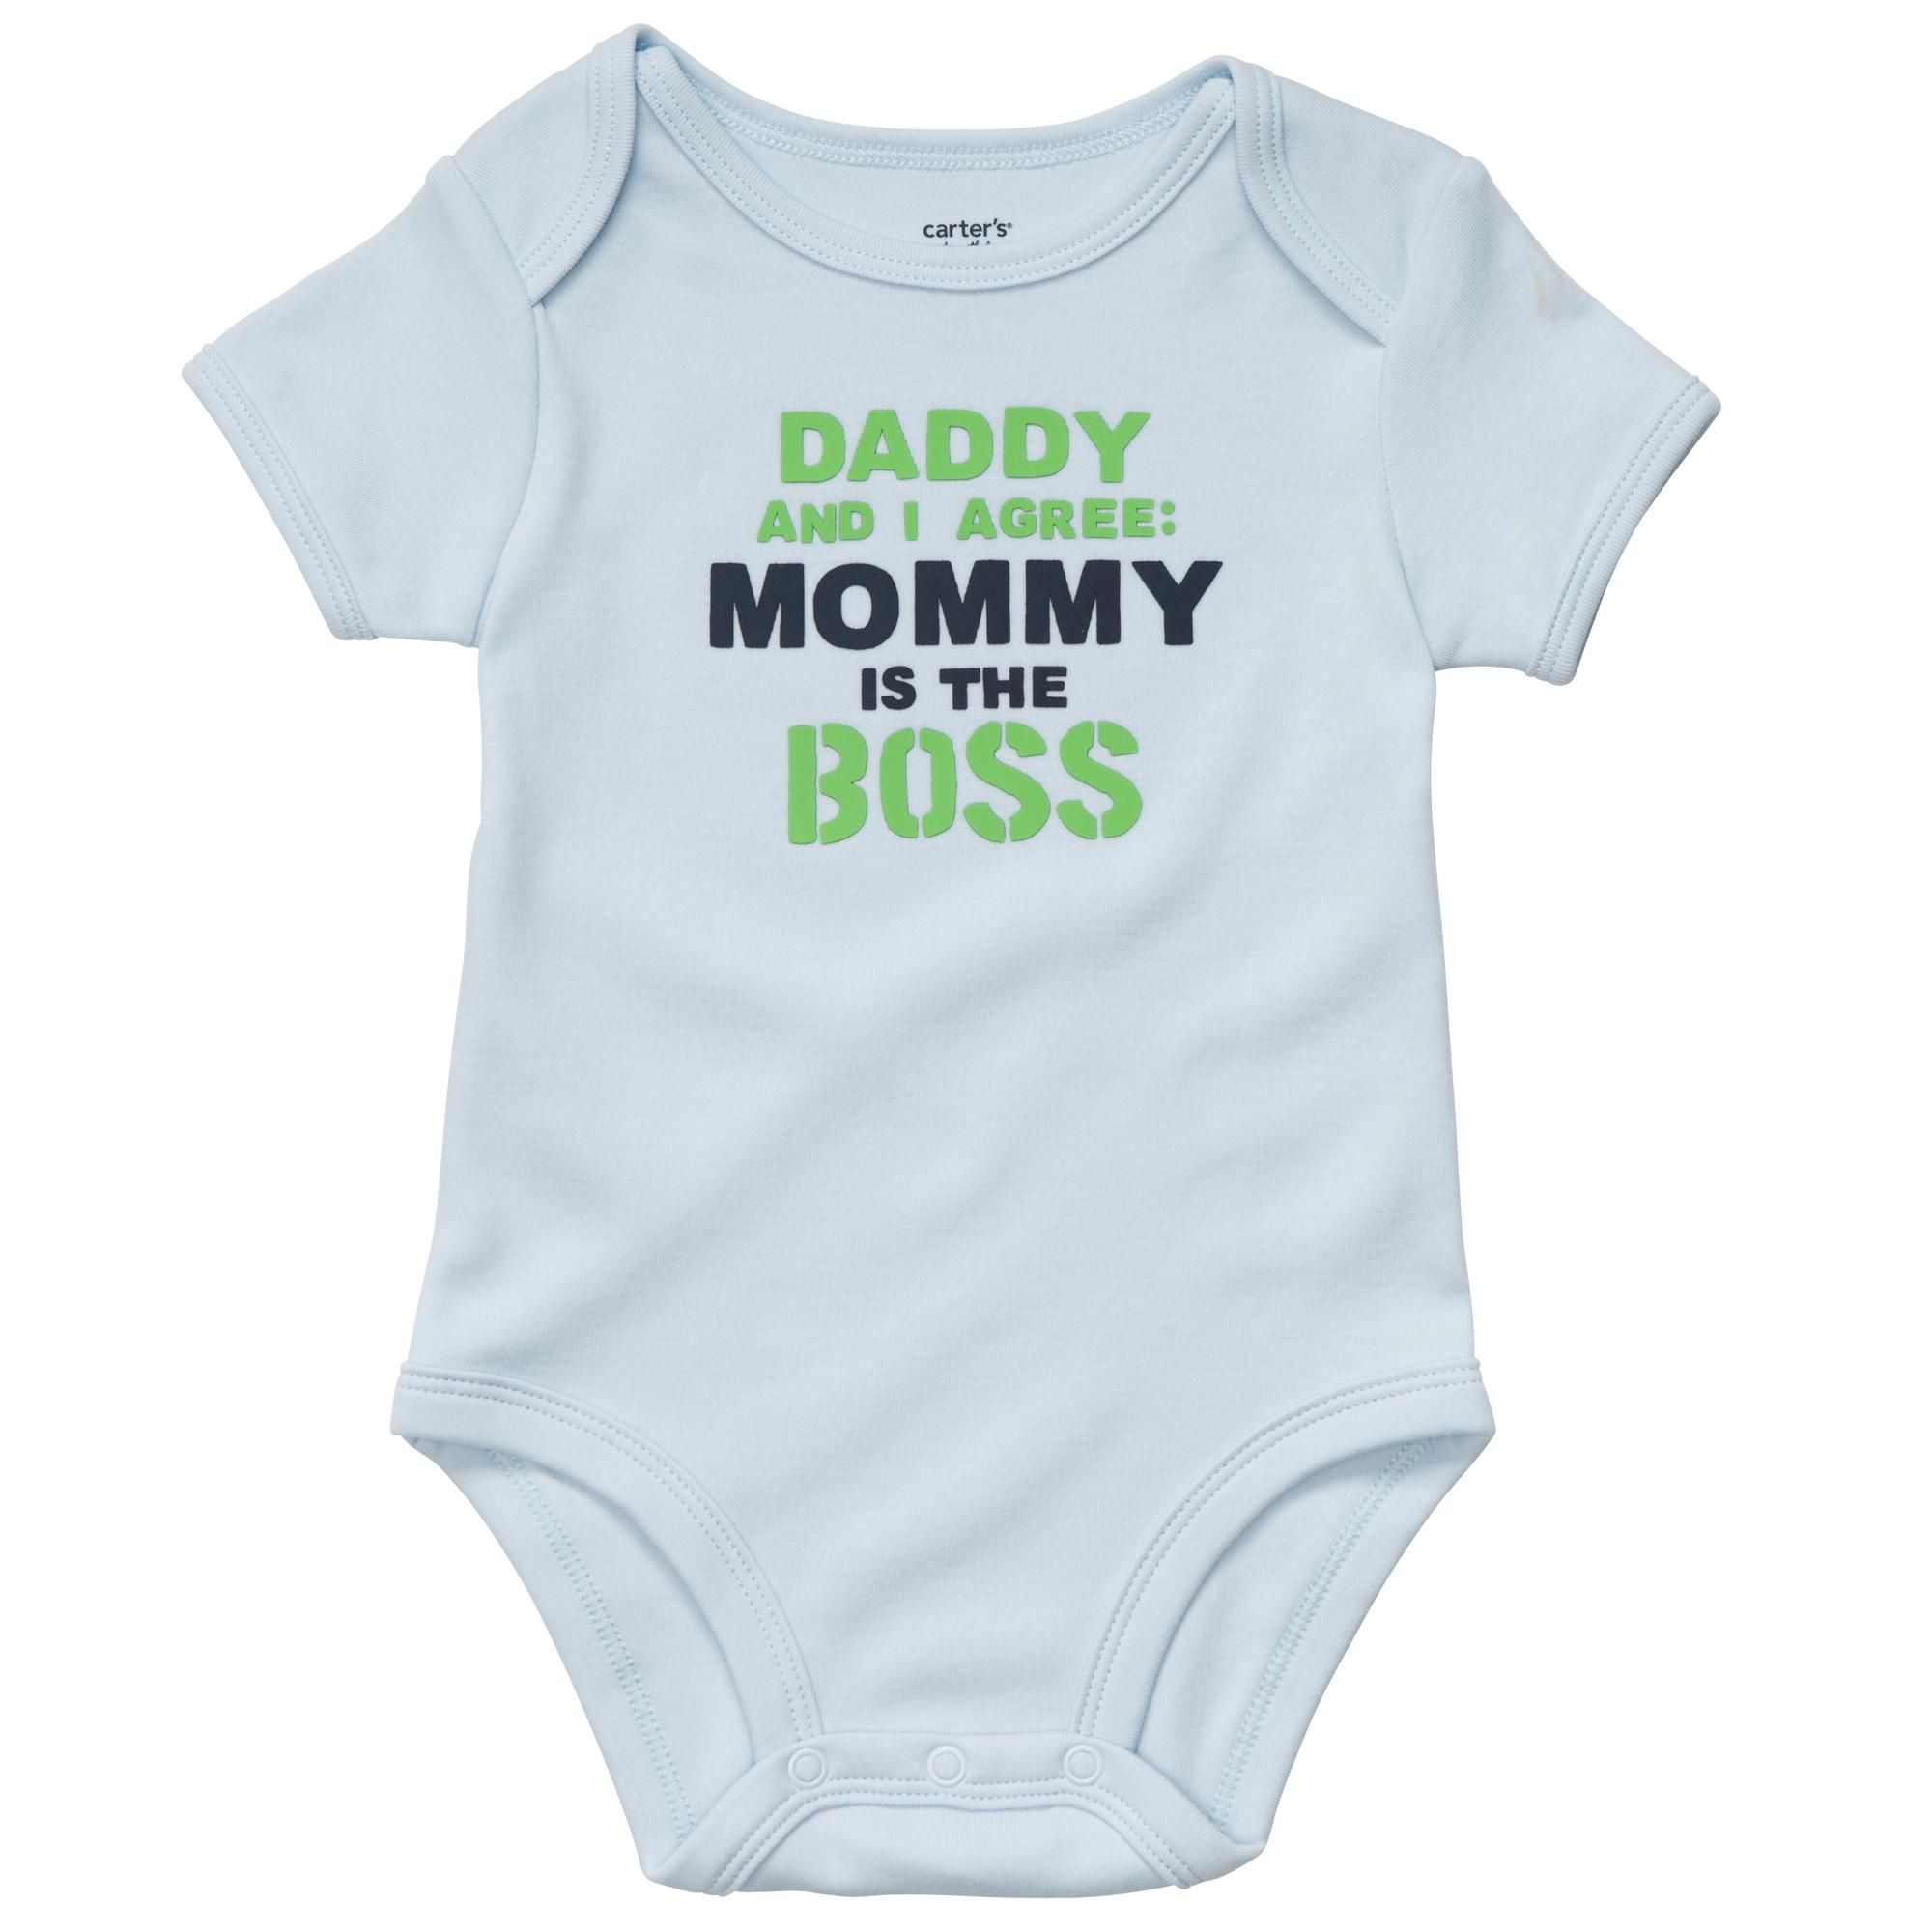 For the mommy to be Guess I will have to have one made that